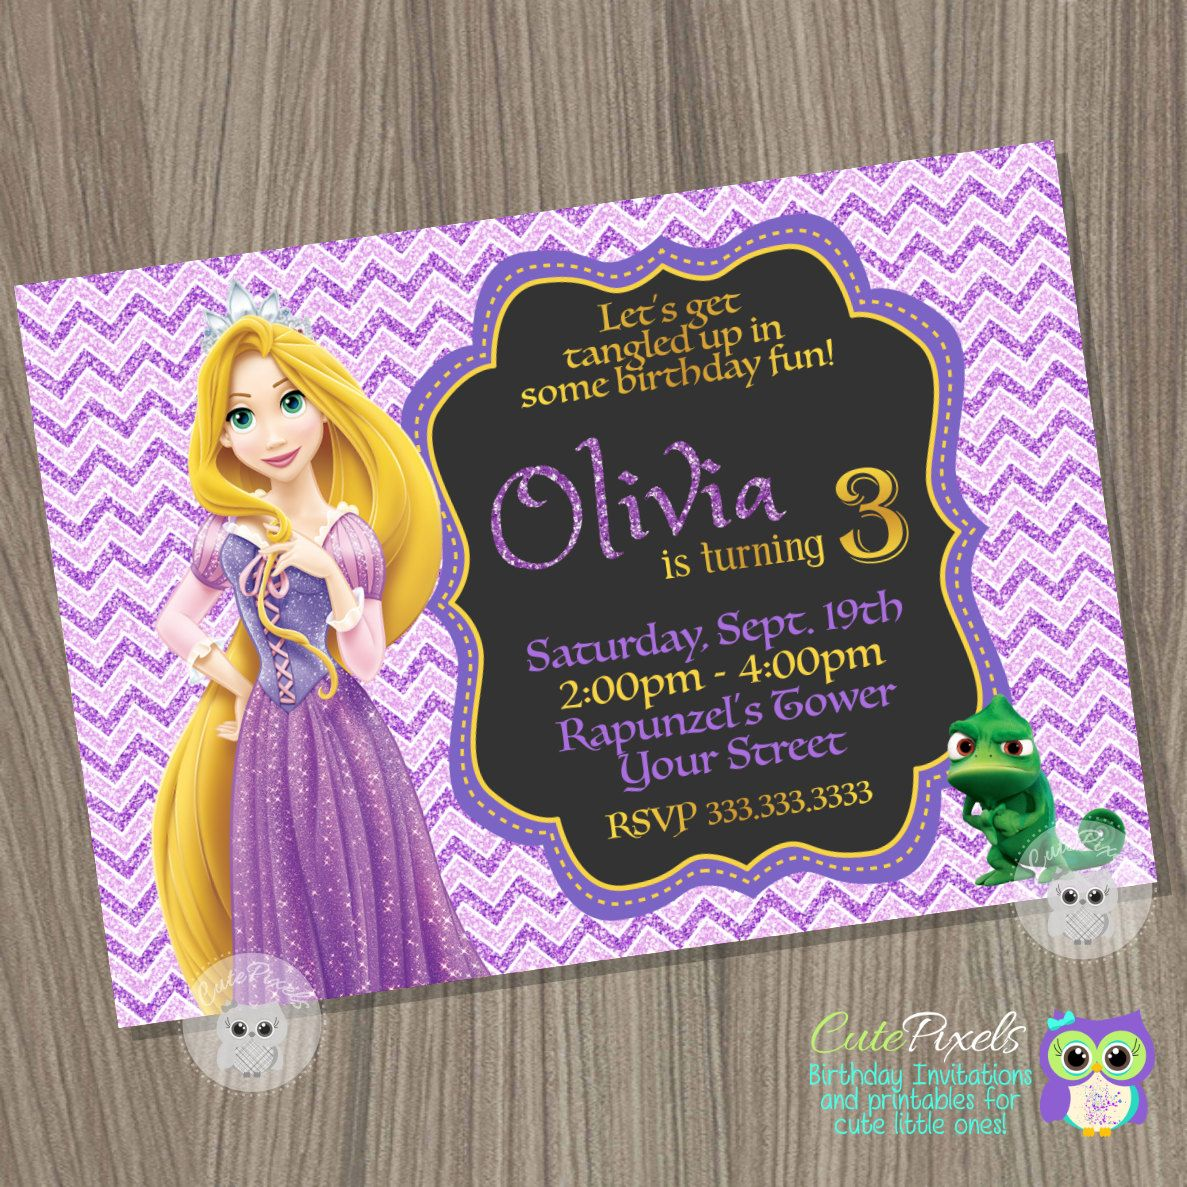 Rapunzel invitation tangled invitation tangled birthday invitation rapunzel invitation tangled invitation tangled birthday invitation rapunzel birthday princess invitation disney princess invitation by cutepixels on filmwisefo